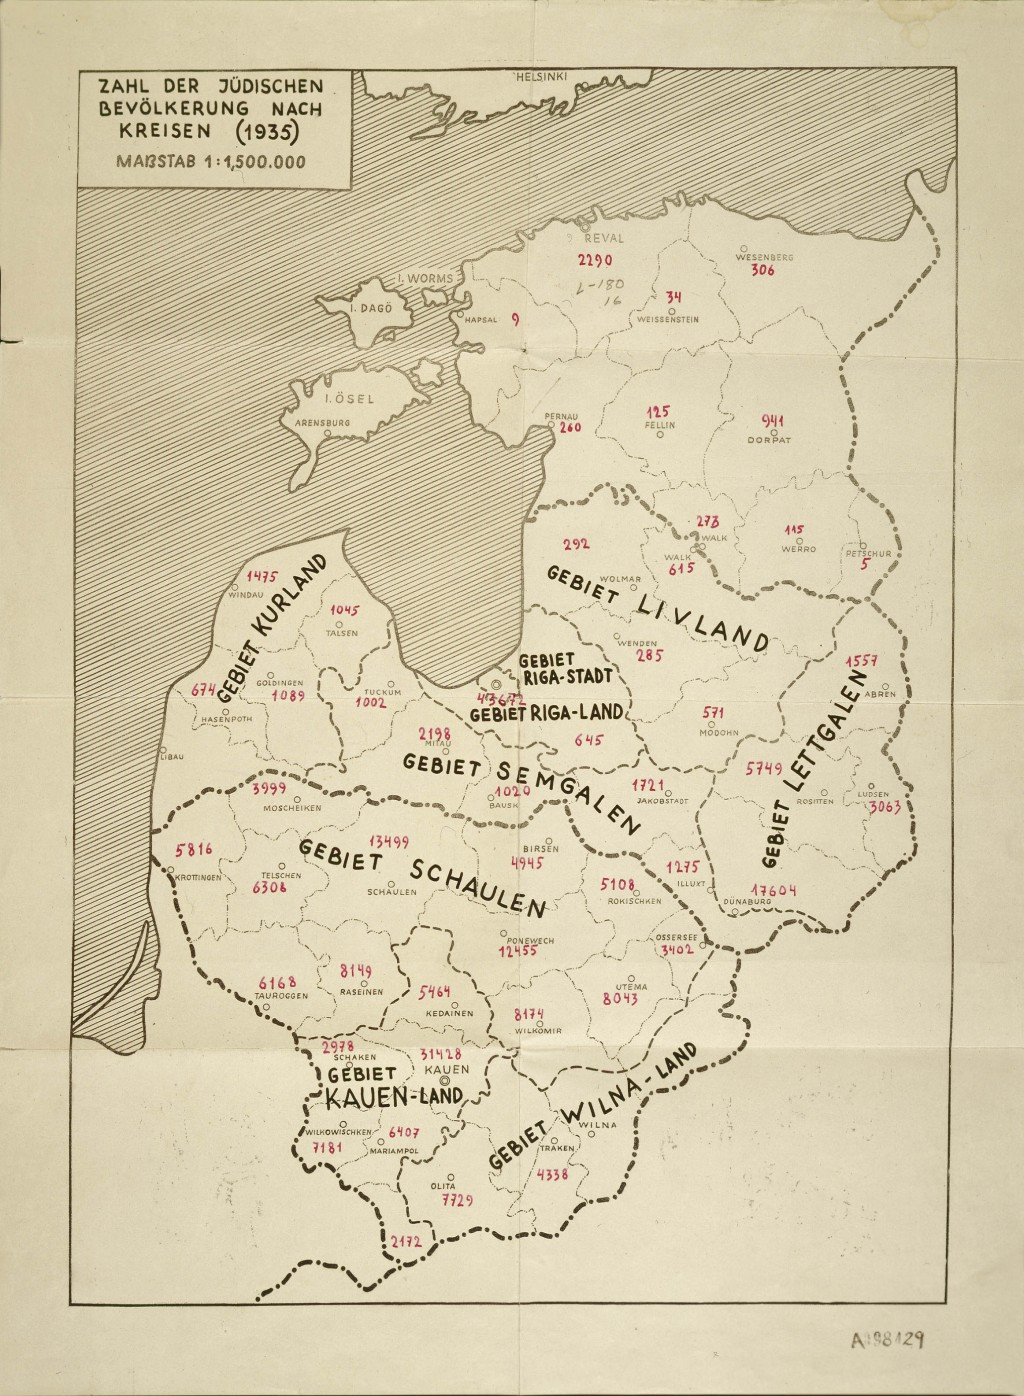 German Map of the Baltic Countries [LCID: 2015bf5t]